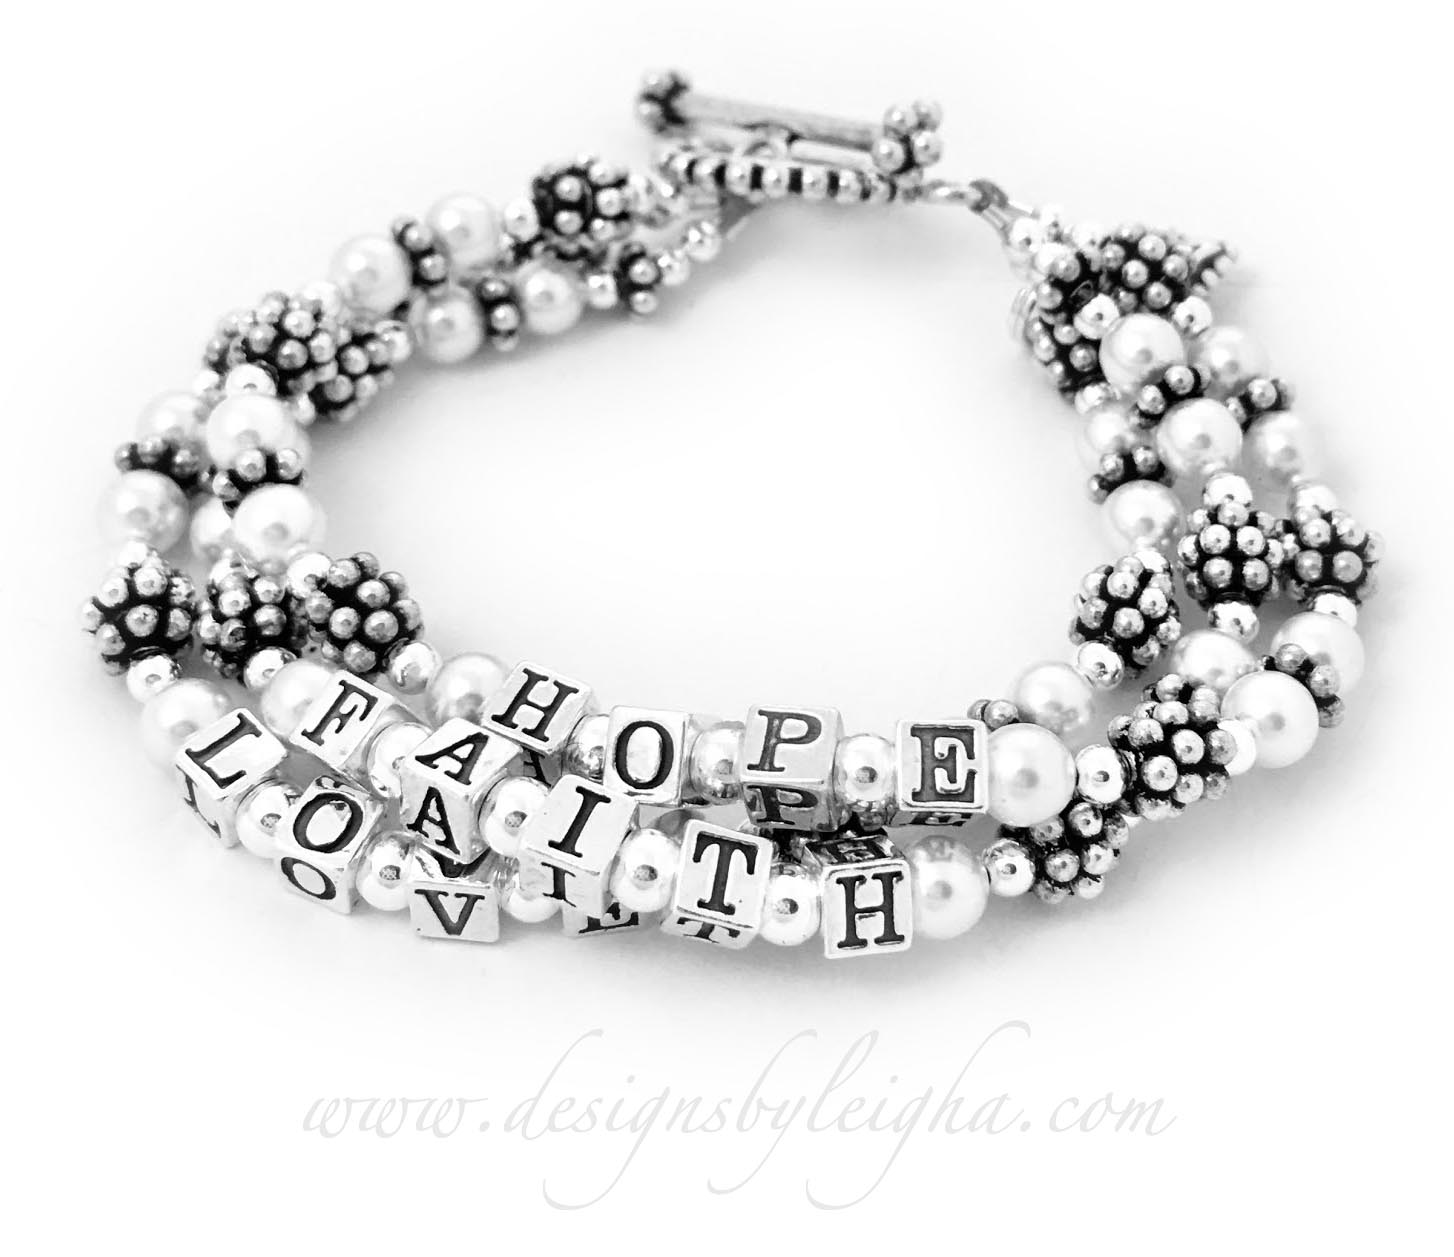 This is a 3-string Faith Hope and Love Bracelet shown with a Beaded Heart Charm.